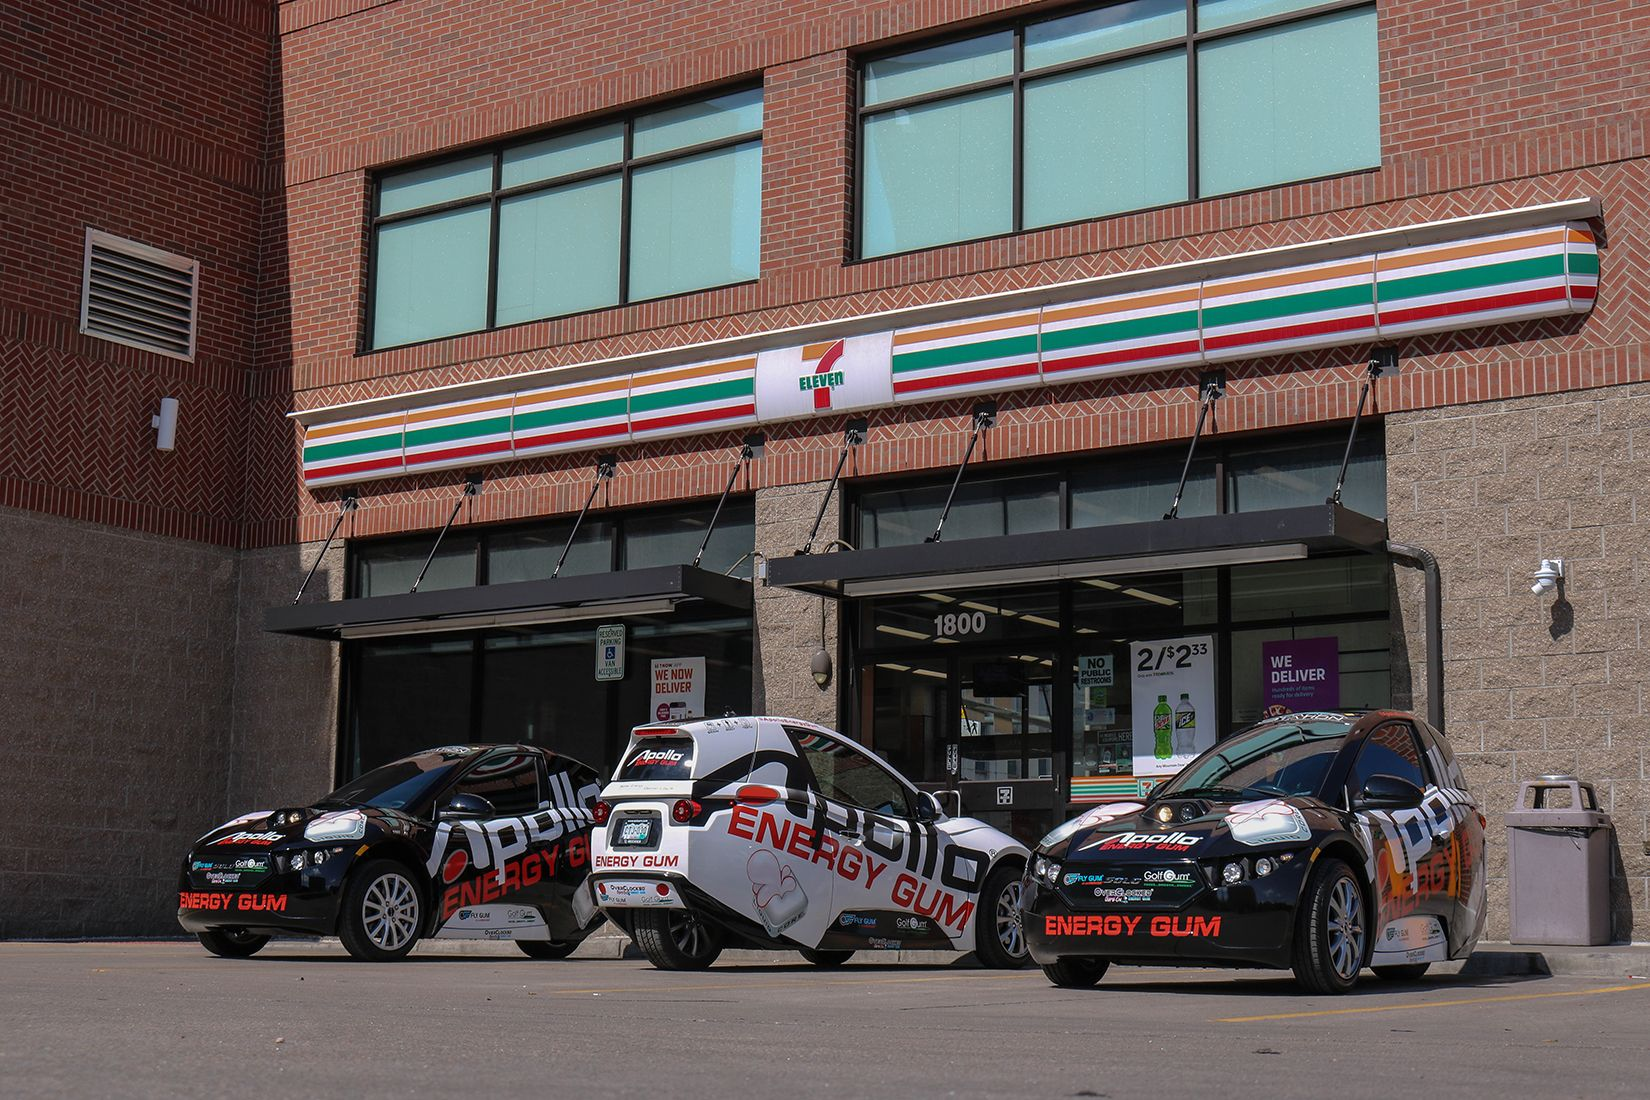 Apollo® SOLO Emission-free Fleet at 7-11